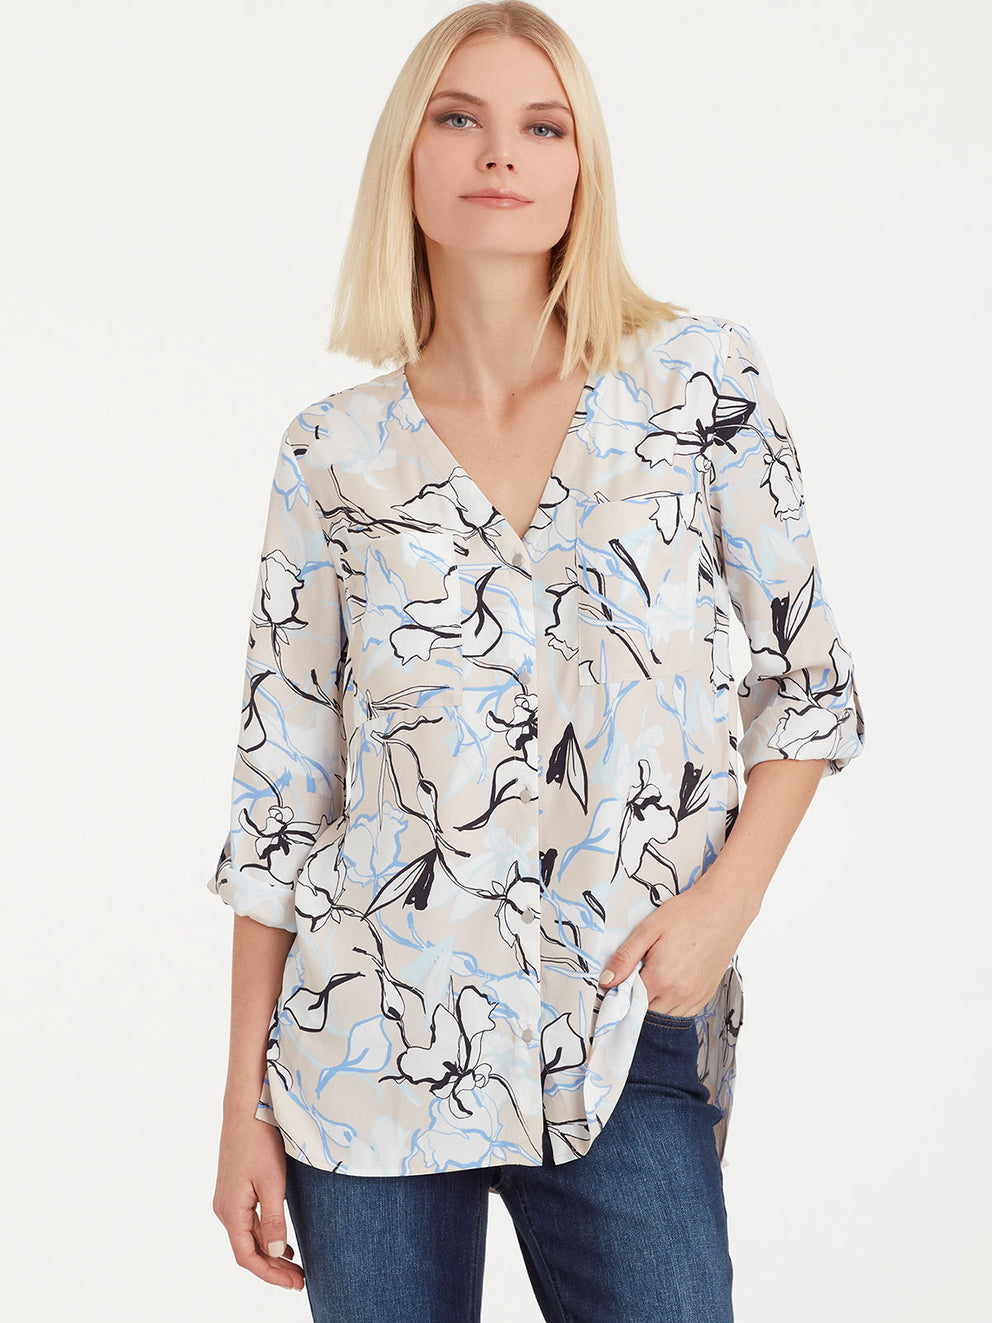 The Jones New York Utility Top in color Pebble Floral - Image Position 1